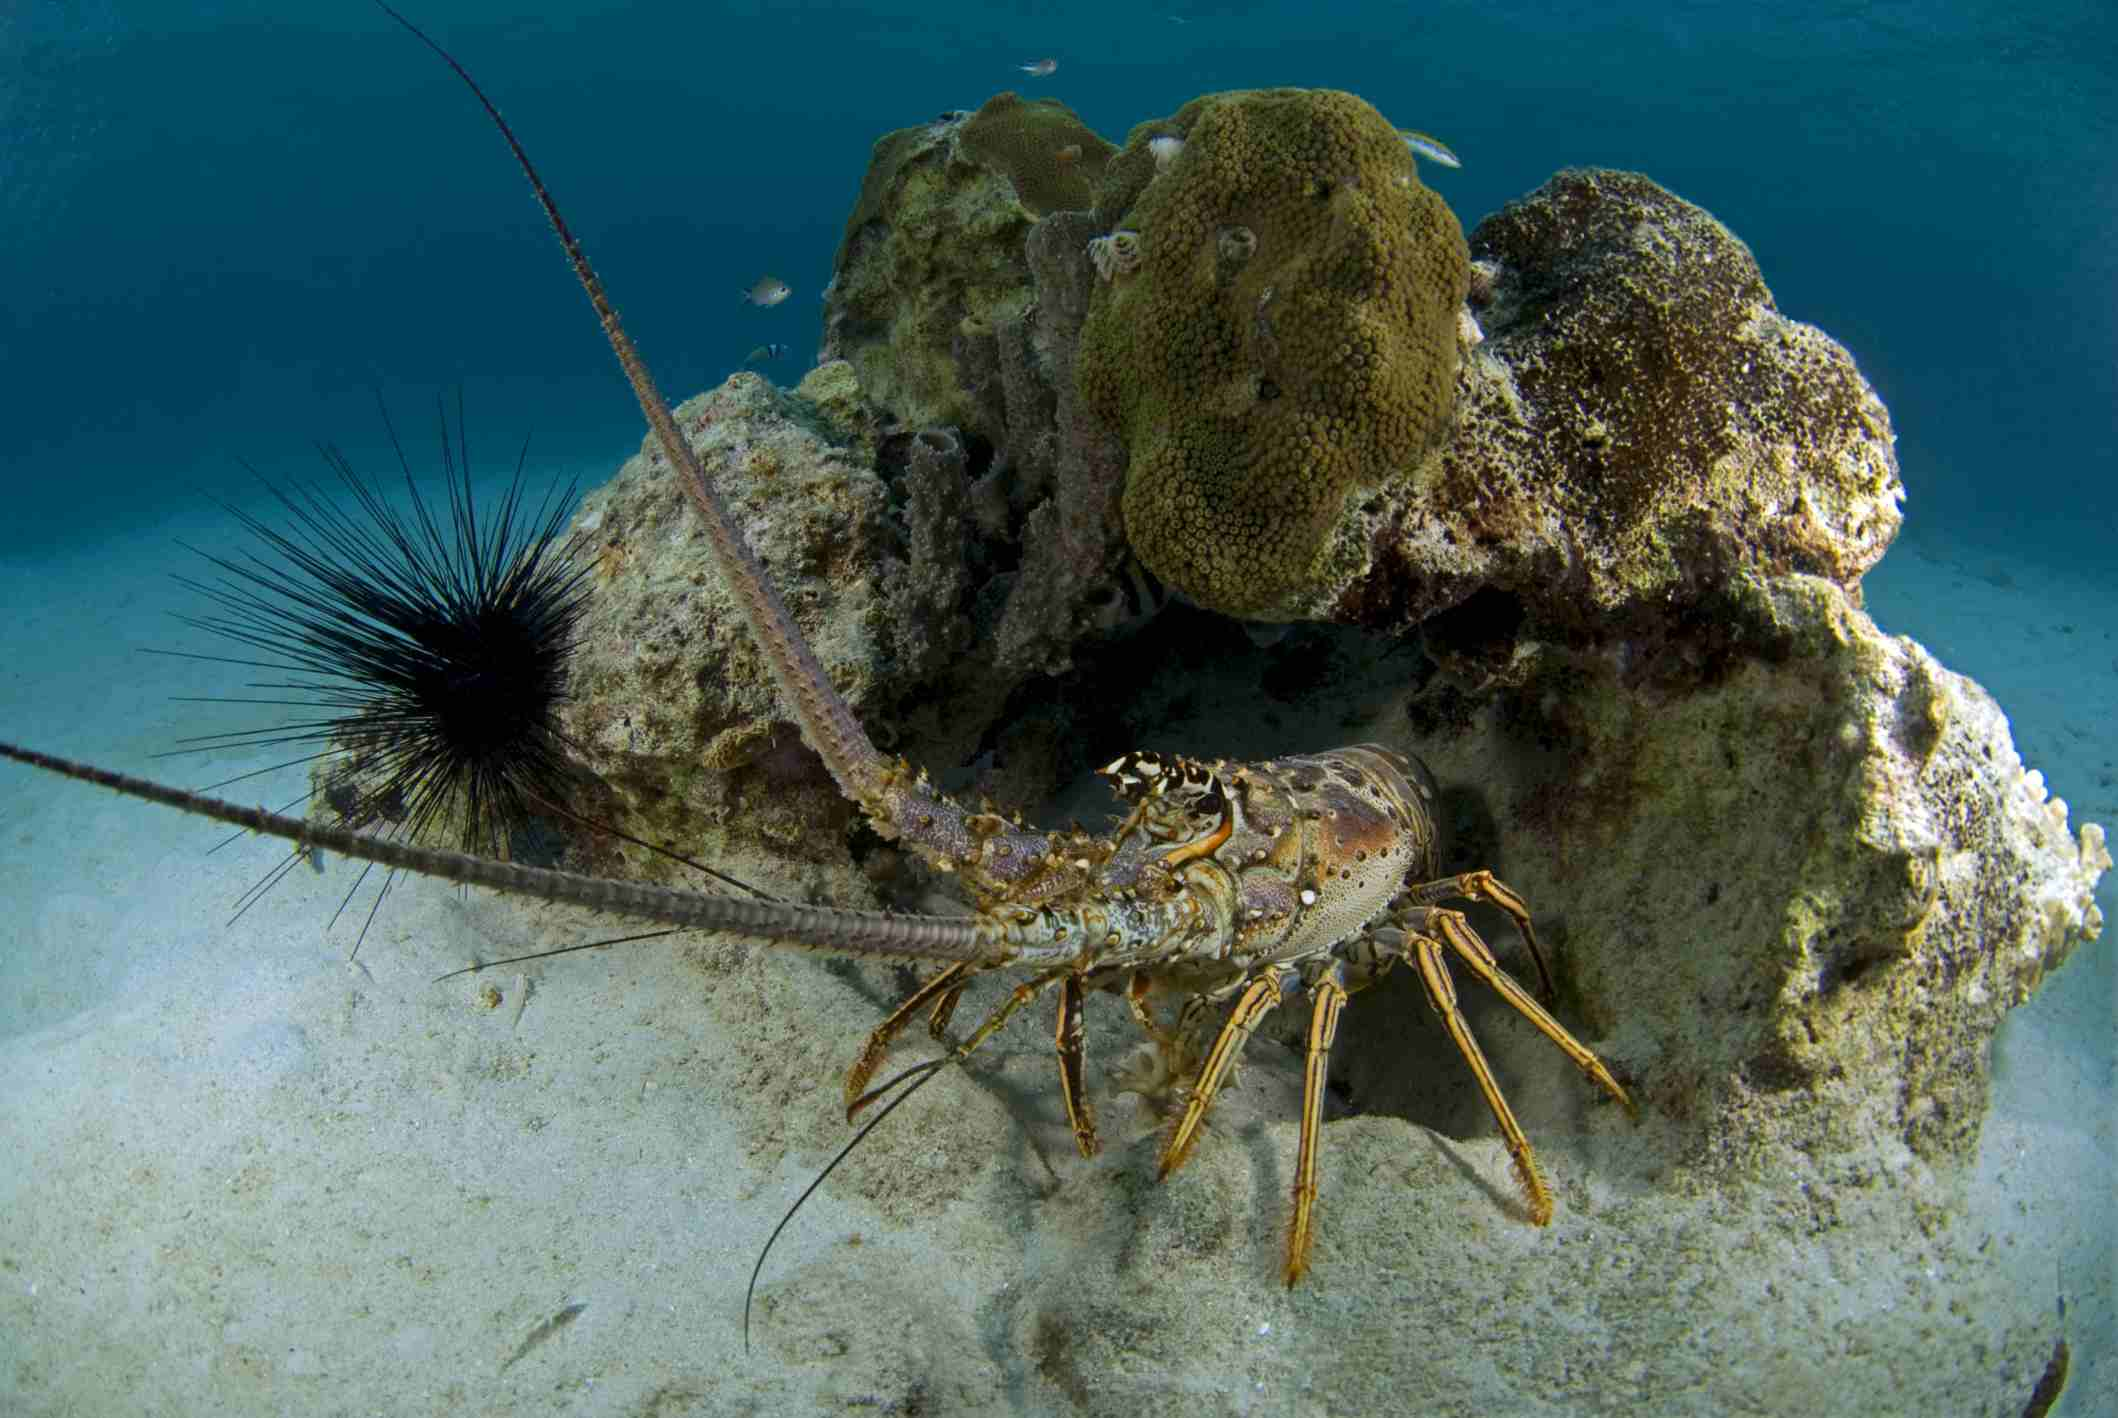 Spiny Lobster / Nature/UIG / Universal Images Group / Getty Images